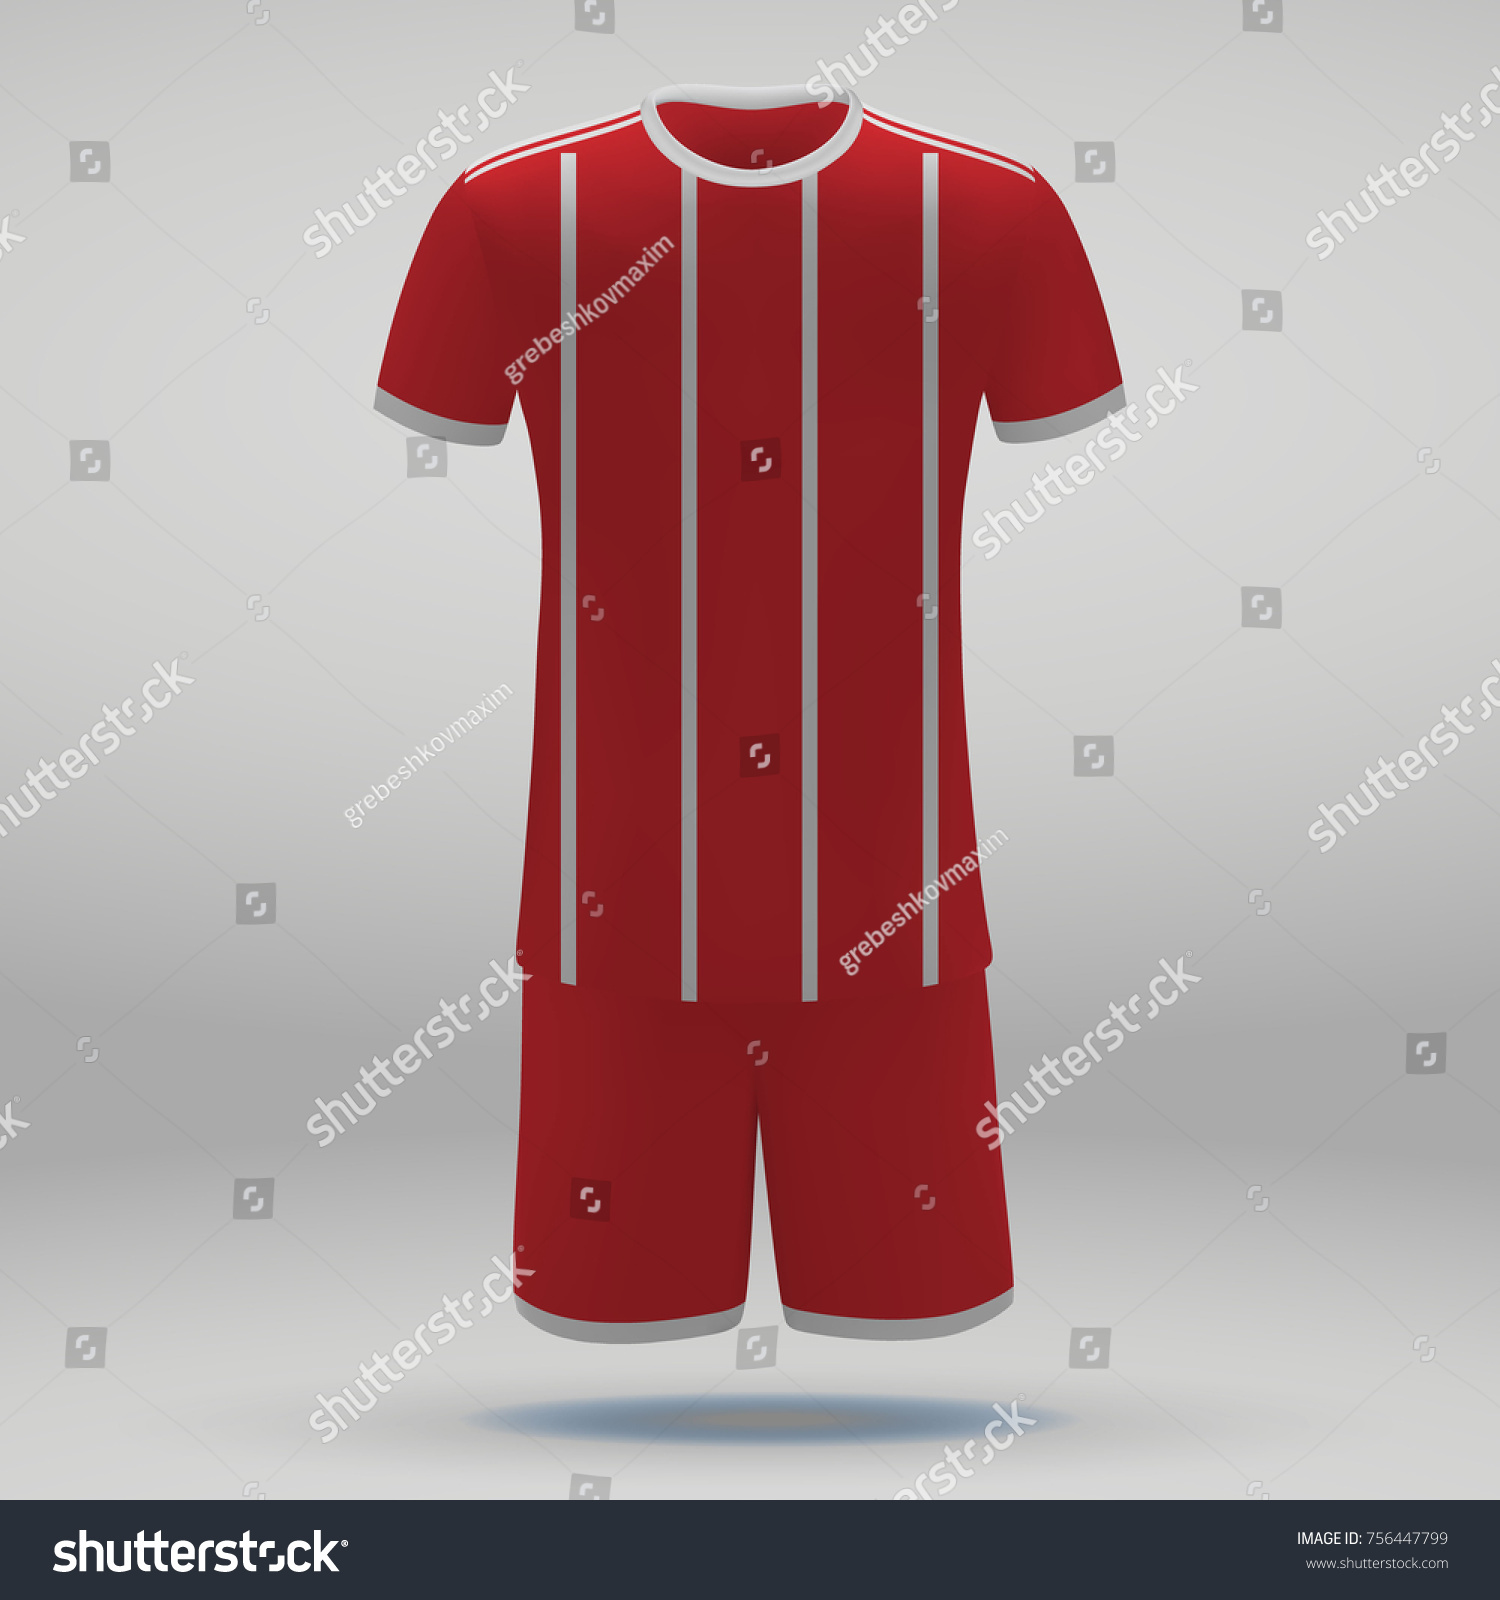 Football Kit Bayern Munich Tshirt Template Stock Vector 756447799 ...